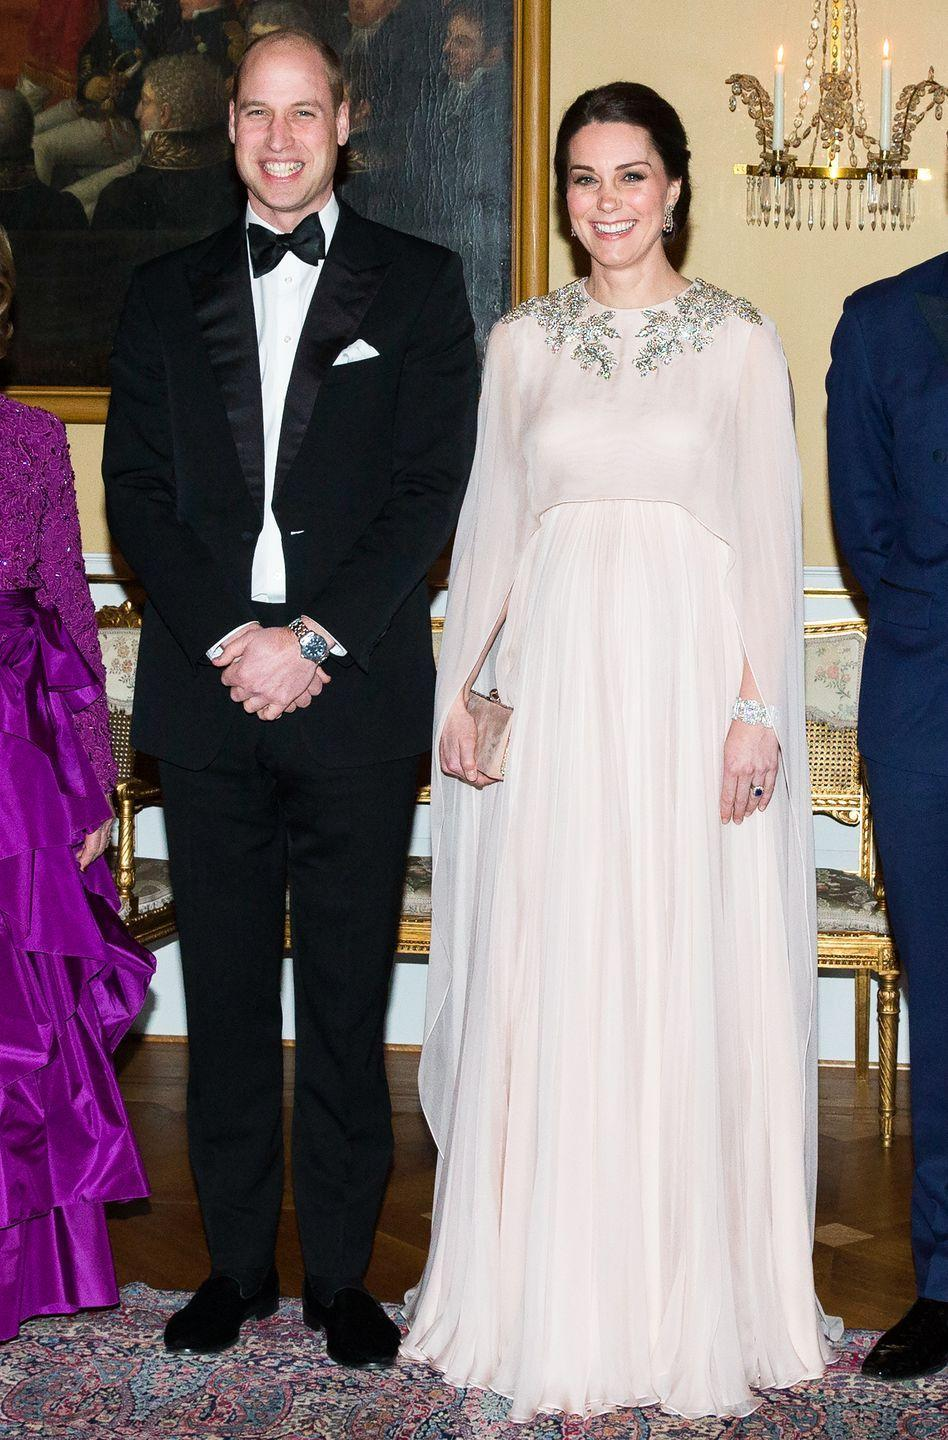 "<p>Will and Kate embarked on<a href=""https://www.townandcountrymag.com/society/tradition/g15917756/photos-kate-middleton-royal-tour-sweden-norway-2018/"" rel=""nofollow noopener"" target=""_blank"" data-ylk=""slk:a royal tour of Norway and Sweden"" class=""link rapid-noclick-resp""> a royal tour of Norway and Sweden</a> in early 2018. The Duchess chose an ethereal blush pink gown by Alexander McQueen that featured a cape and stunning crystal detailing for a formal state dinner during the royal visit. </p>"